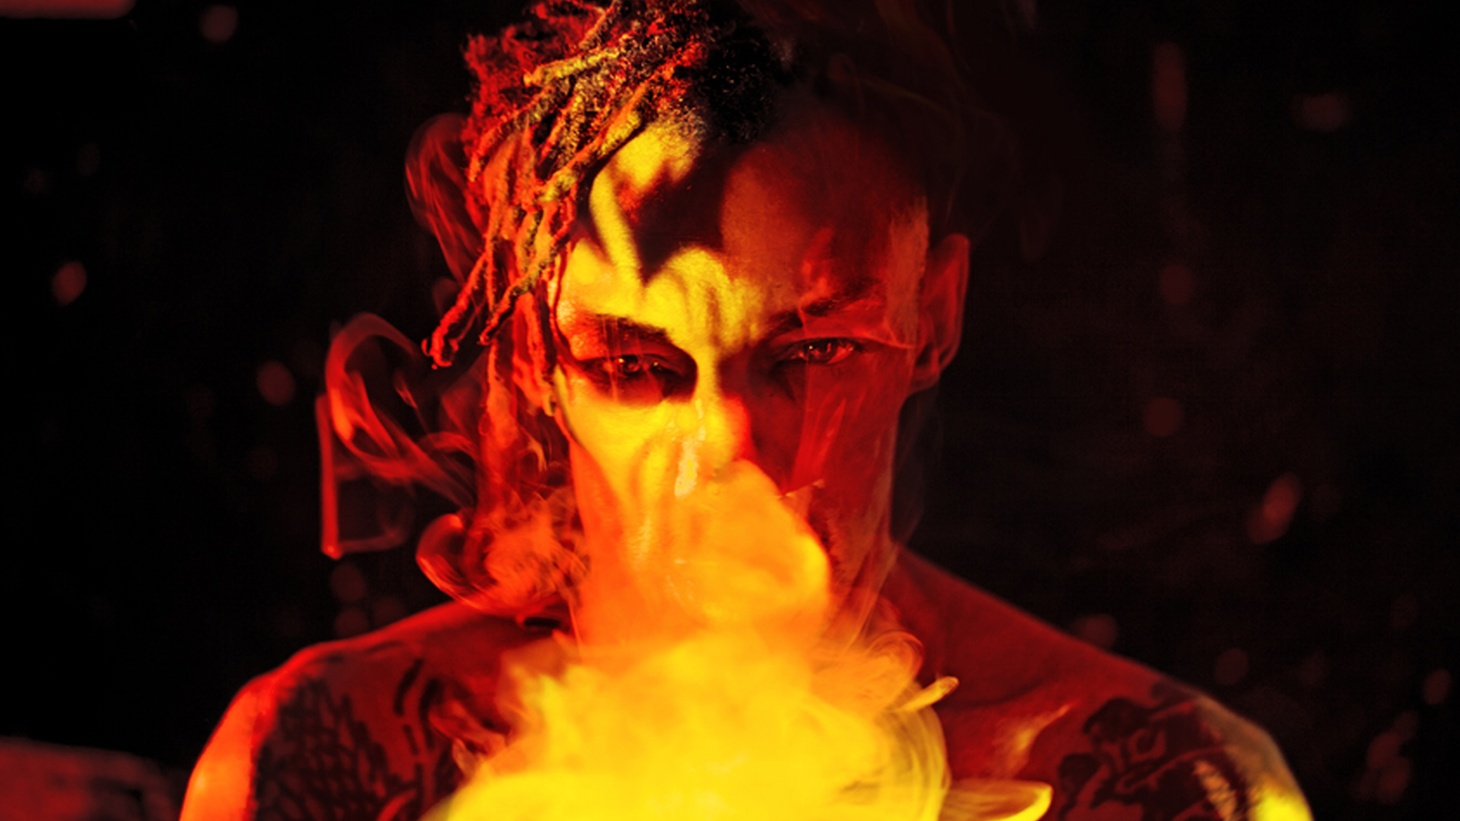 """Trip hop hero Tricky used his given name -- """"Adrian Thaws"""" -- as the title of his new album. Today's Top Tune is the track that KCRW deejays are all gravitating towards, it's called """"Nicotine Love""""."""